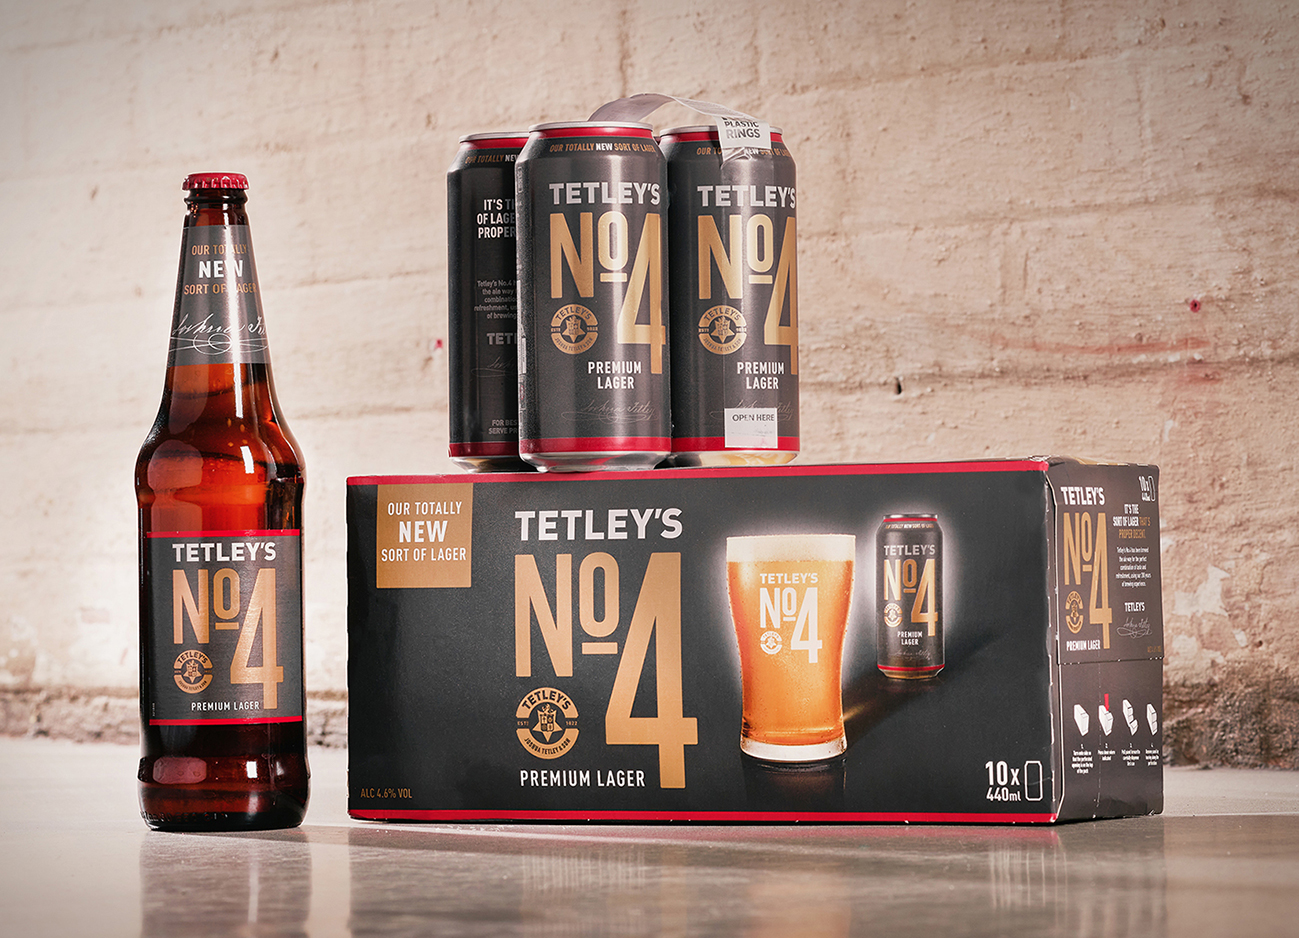 Fun Agency Cheers Creation of Tetley's First Ever Premium Lager